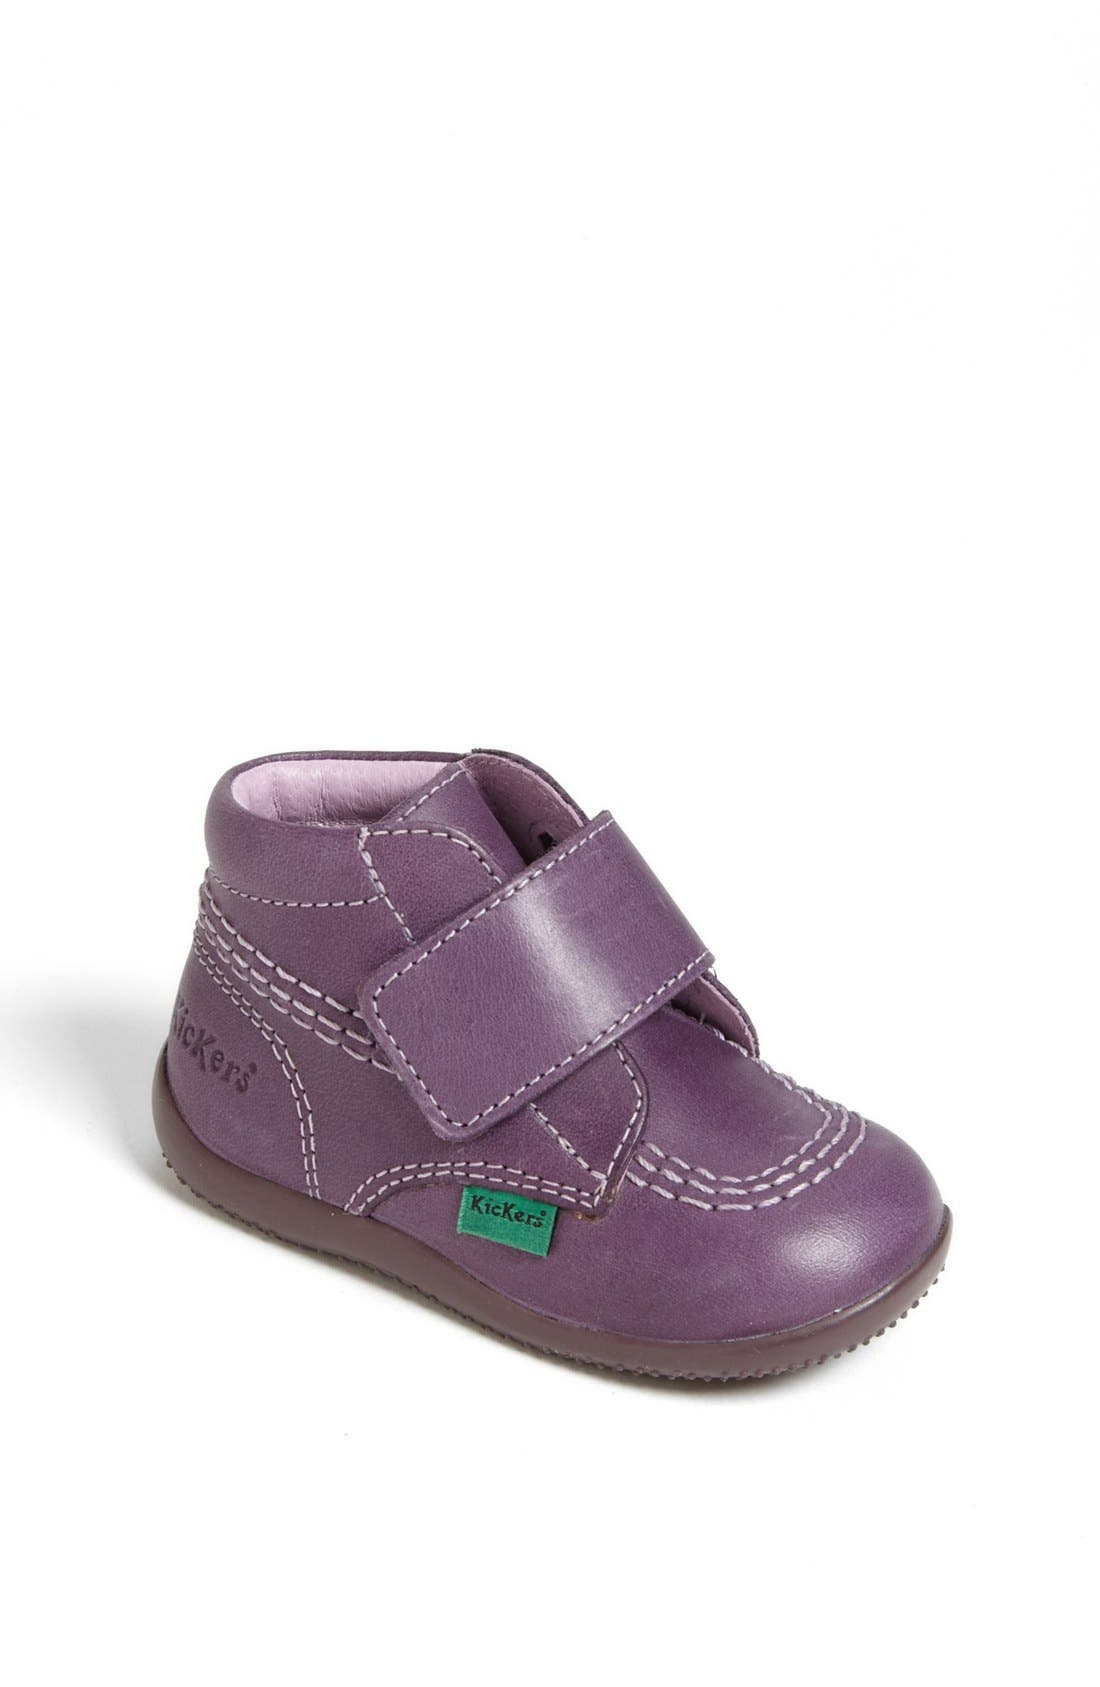 Alternate Image 1 Selected - Kickers 'Bilou 2' Boot (Baby, Walker & Toddler)